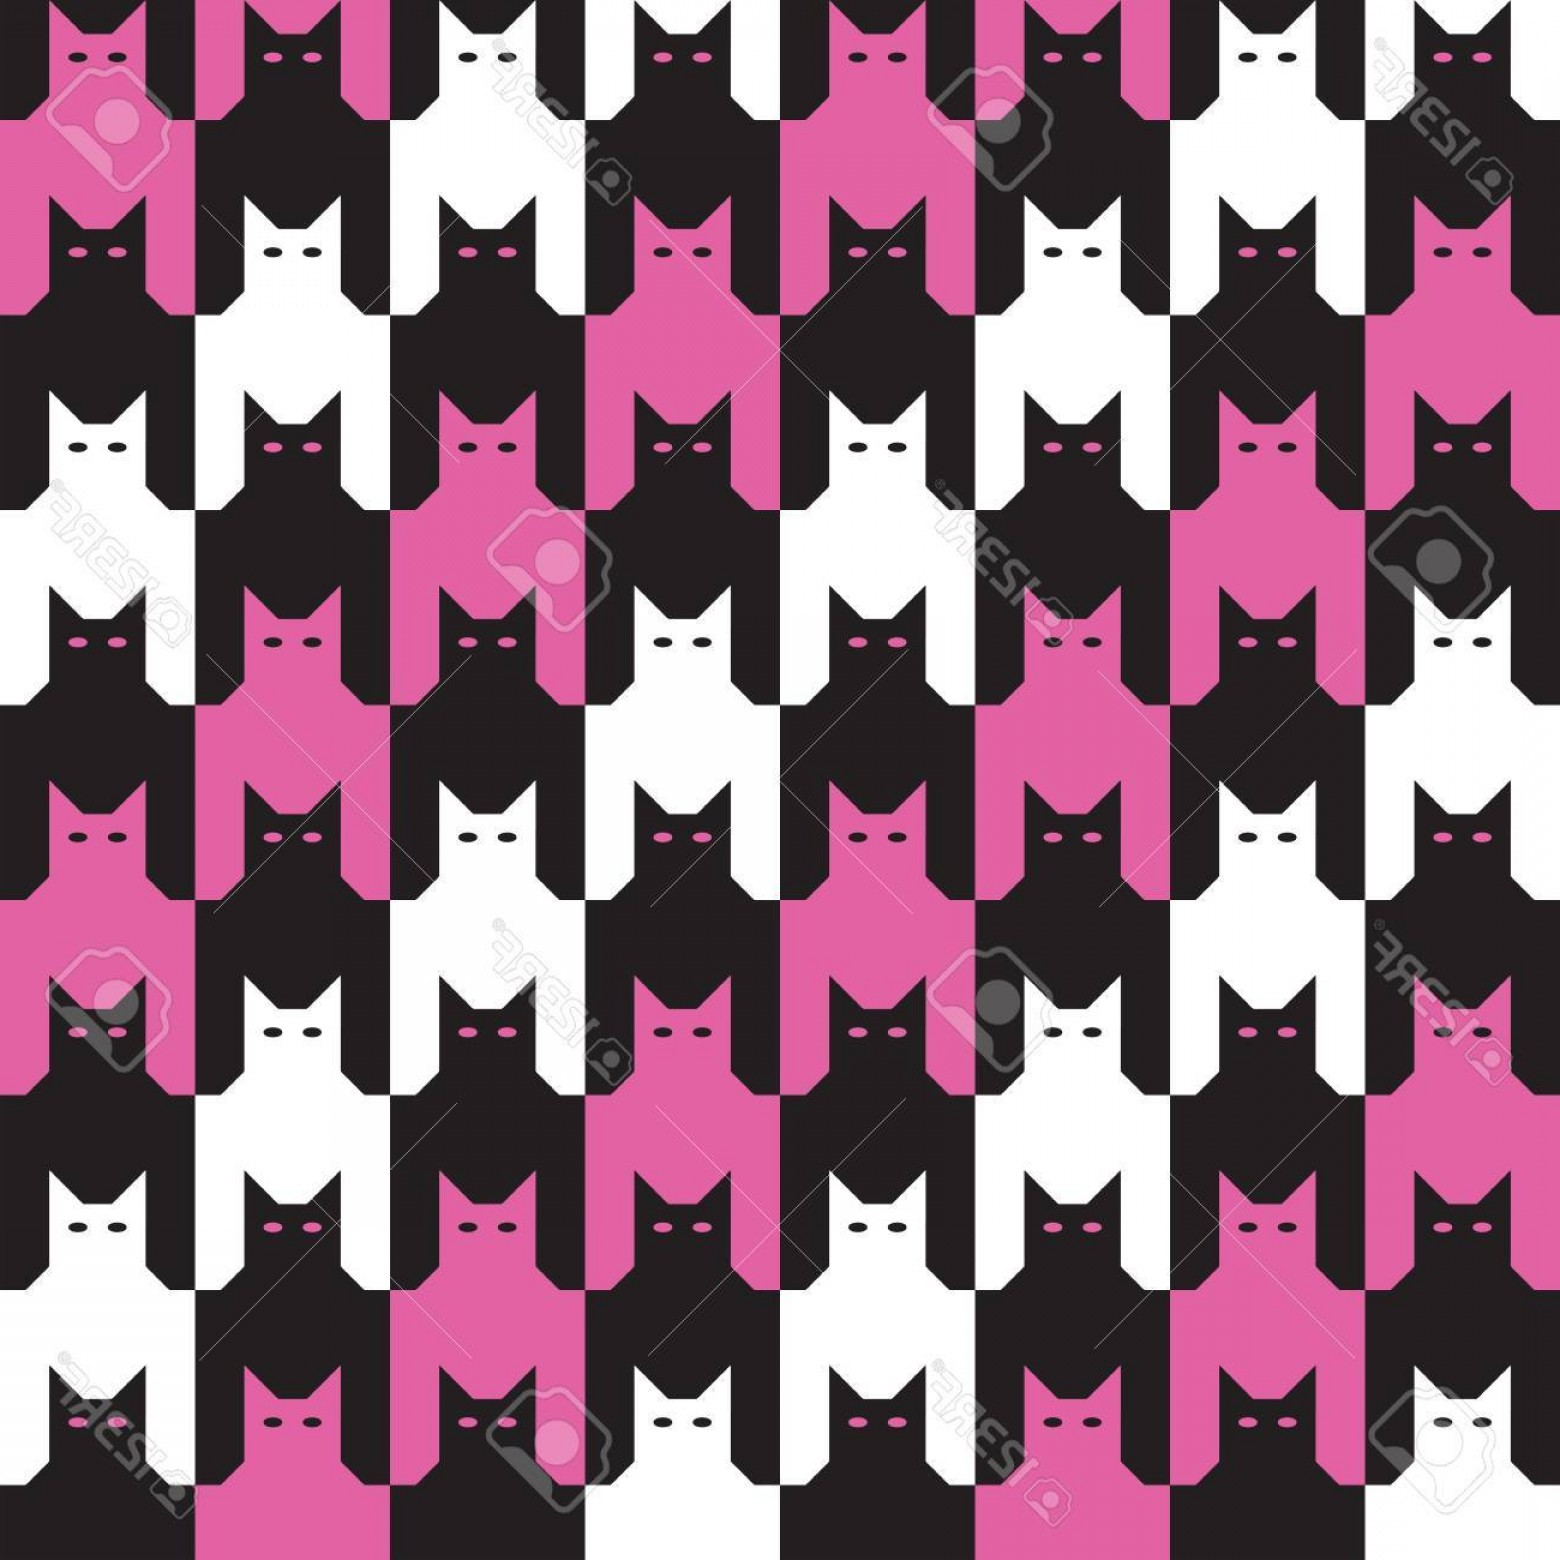 Pink And Black Houndstooth Vector: Photoseamless Cats Houndstooth Pattern In Pink And Black